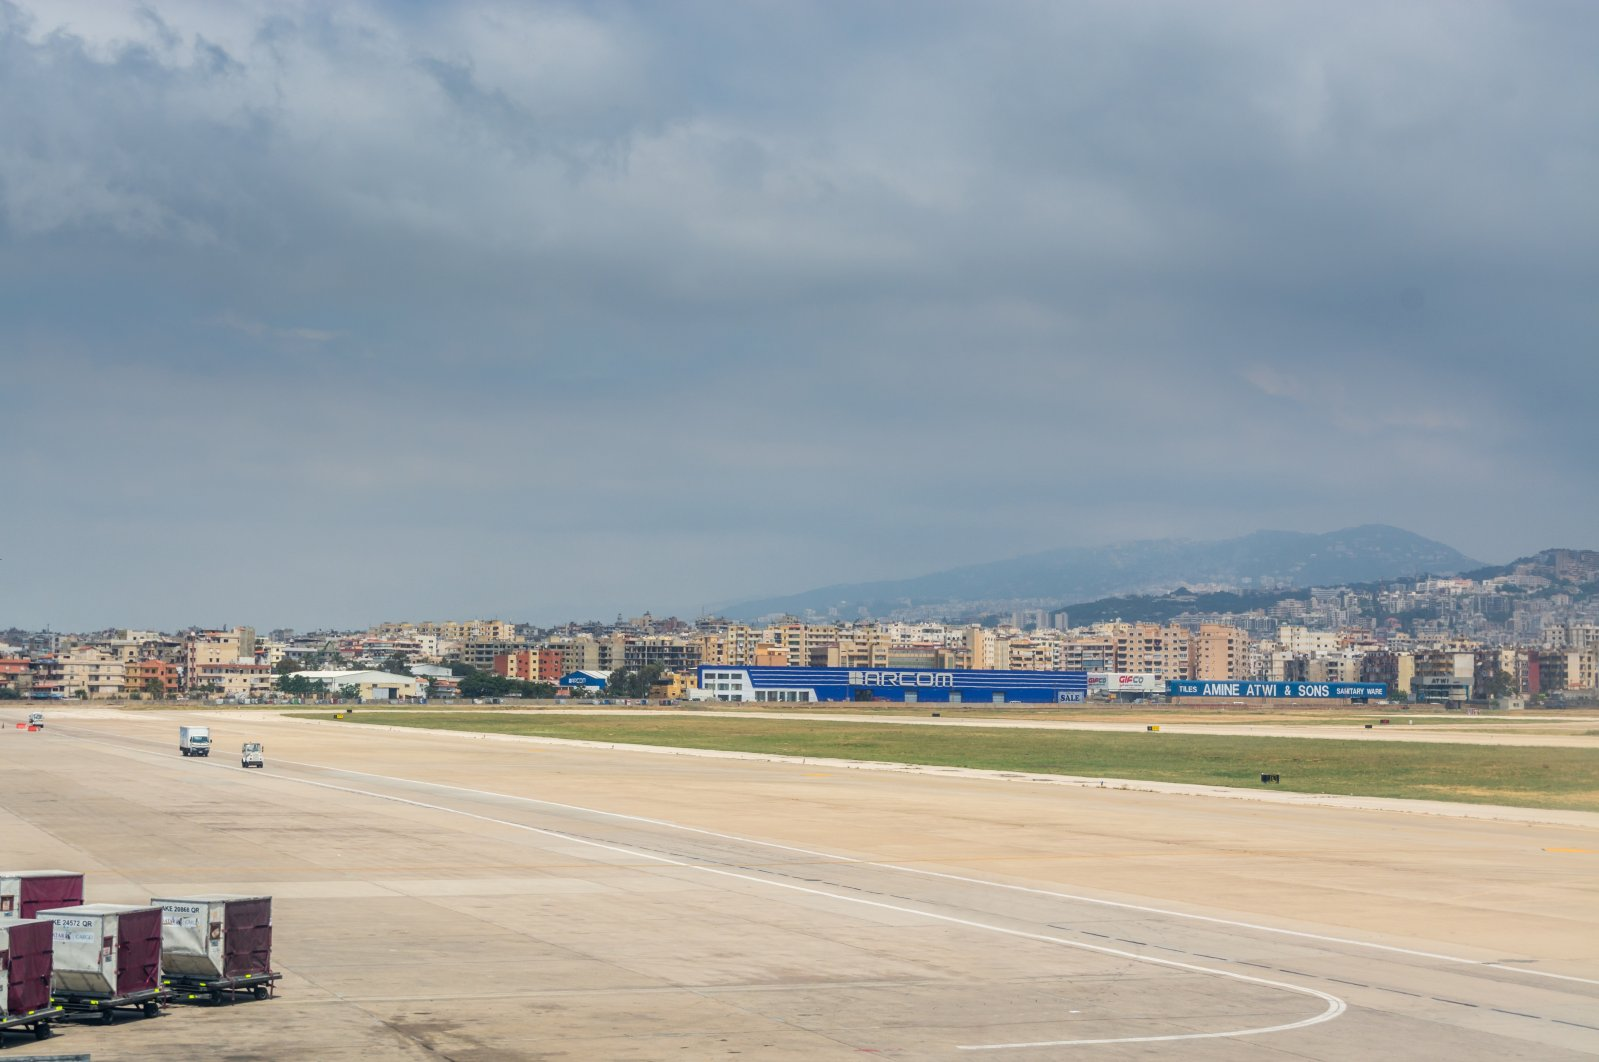 A runway at the Beirut airport. (Shutterstock File Photo)